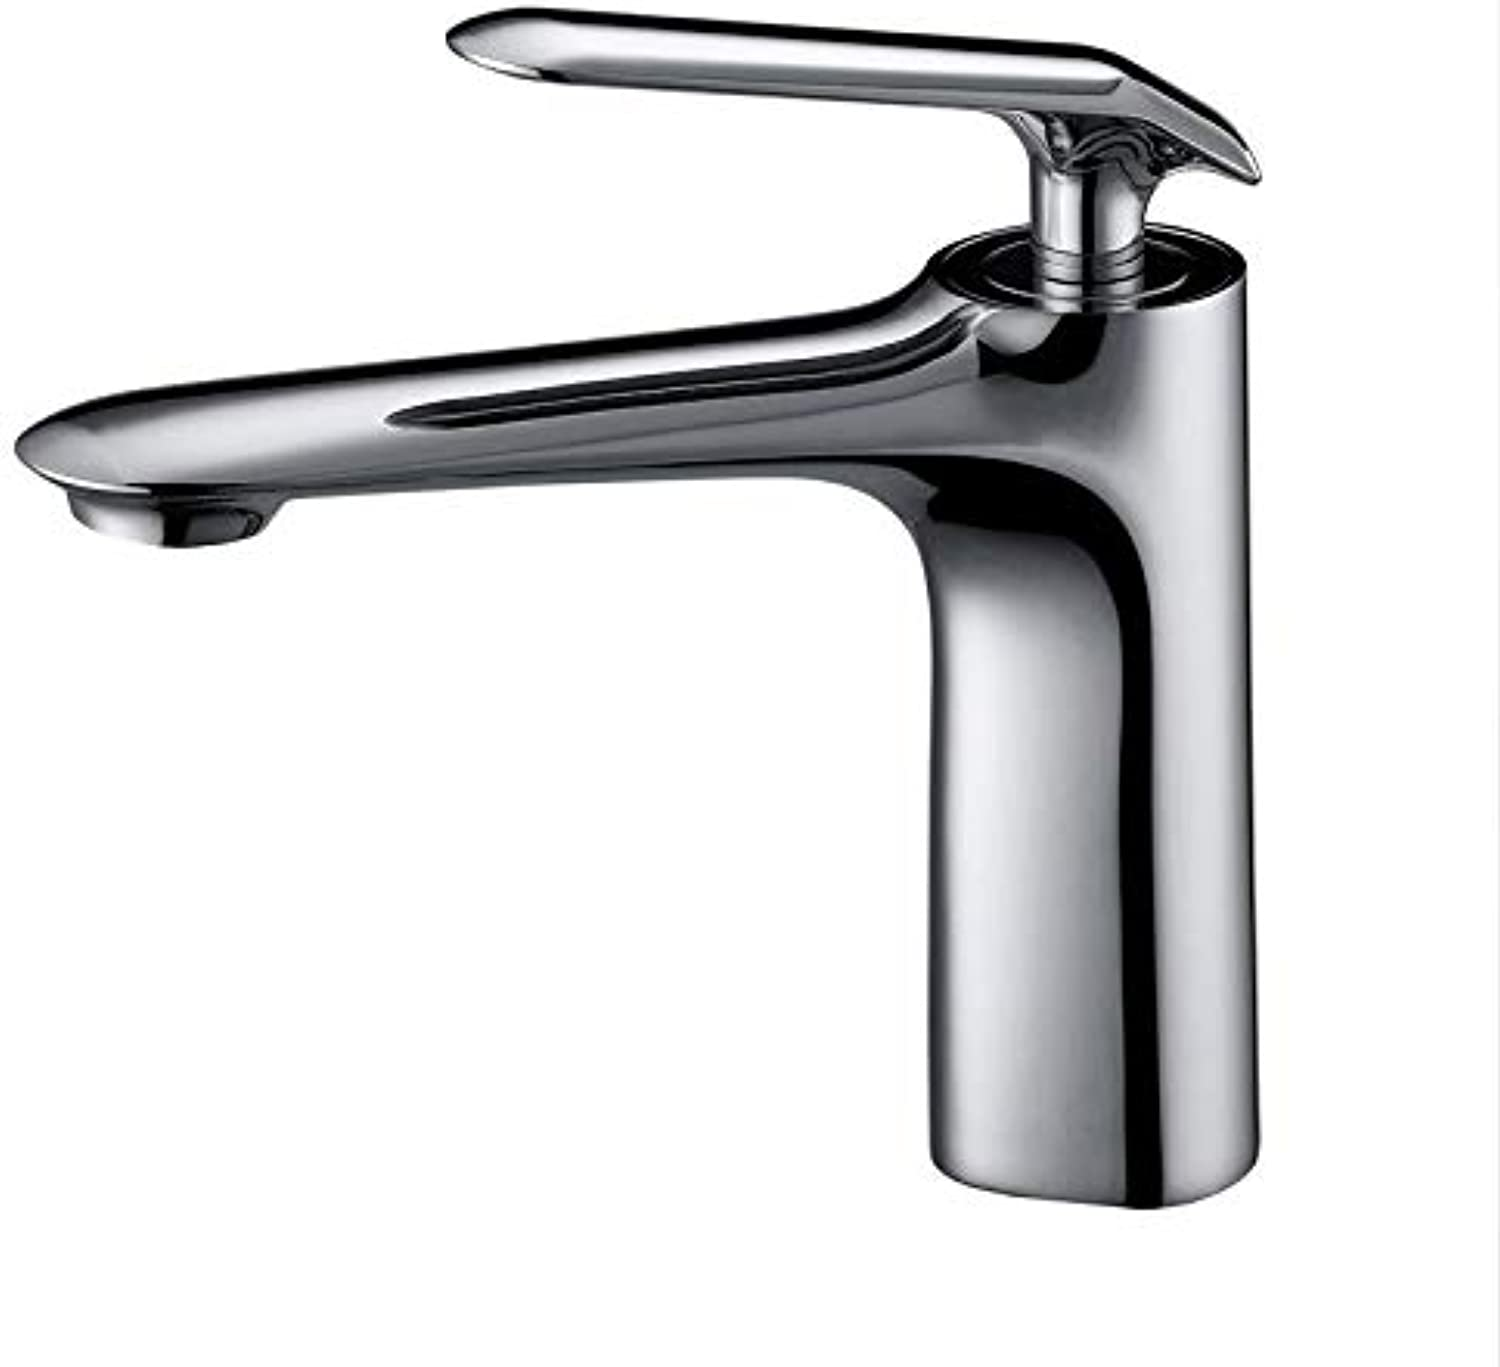 Taps Faucet Copper Hot and Cold Water Basin Faucet Silver Chrome Washbasin Faucet